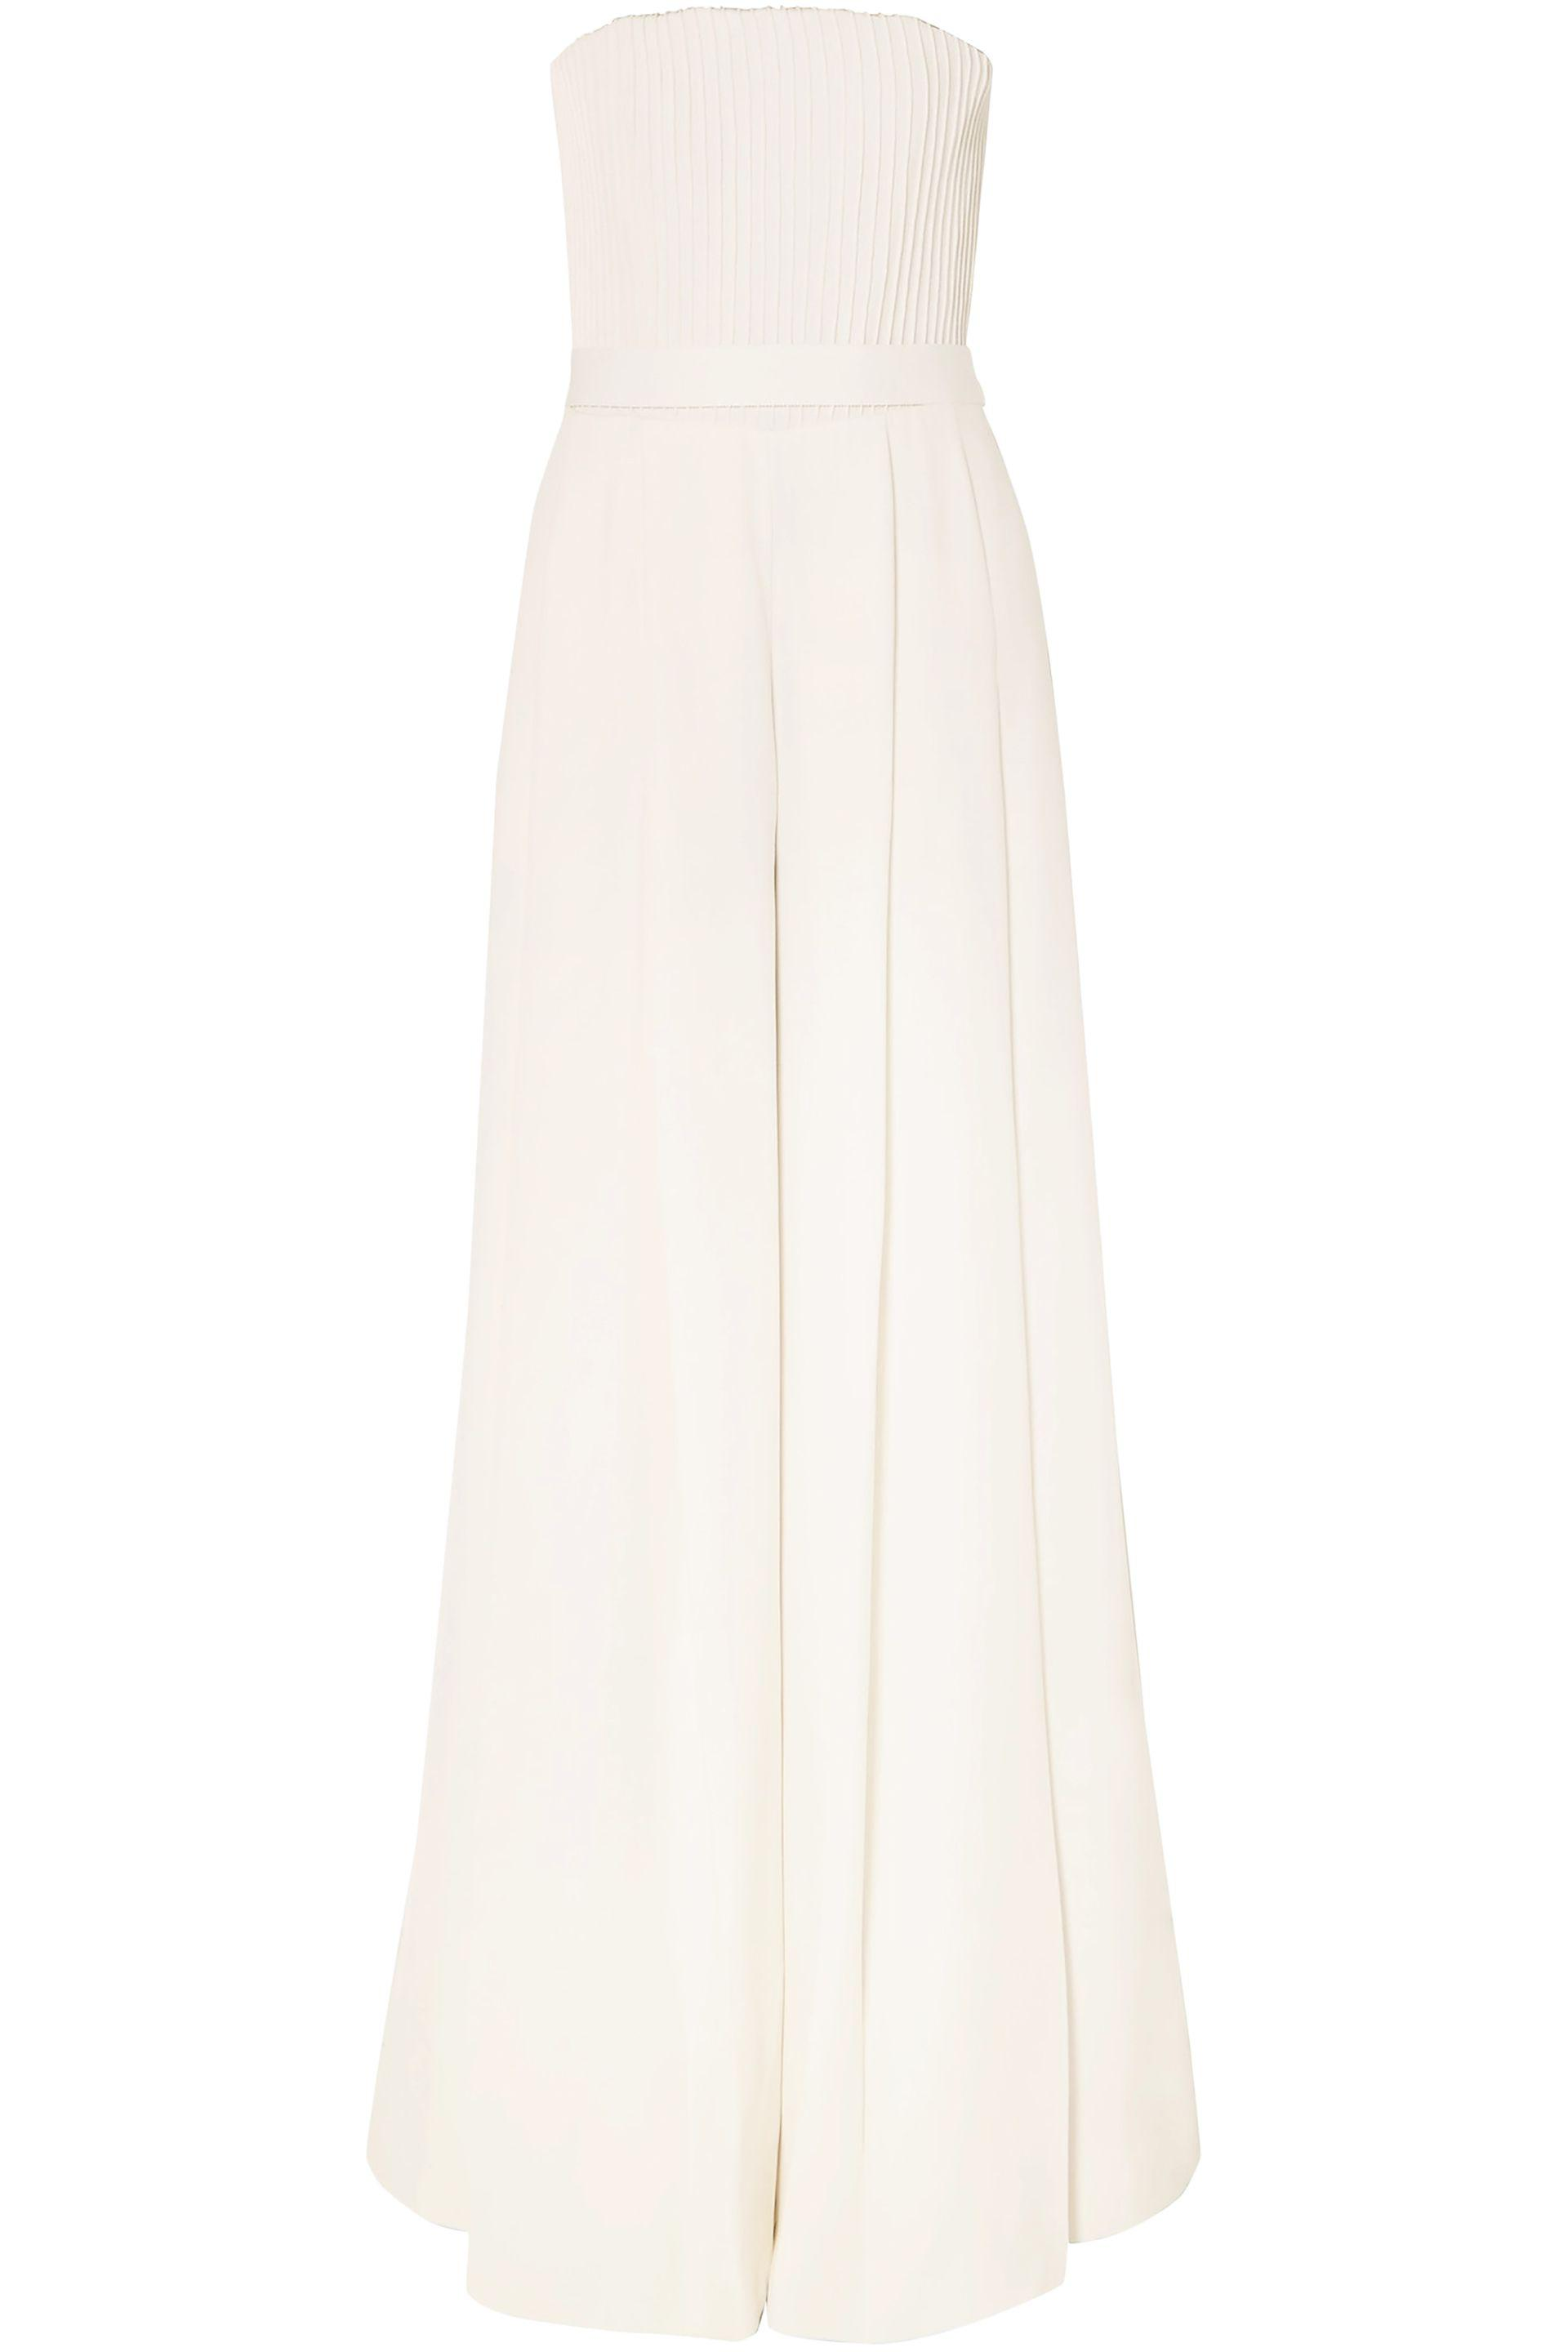 a87cbfb5b26 Lyst - Brandon Maxwell Strapless Pintucked Crepe Jumpsuit in White